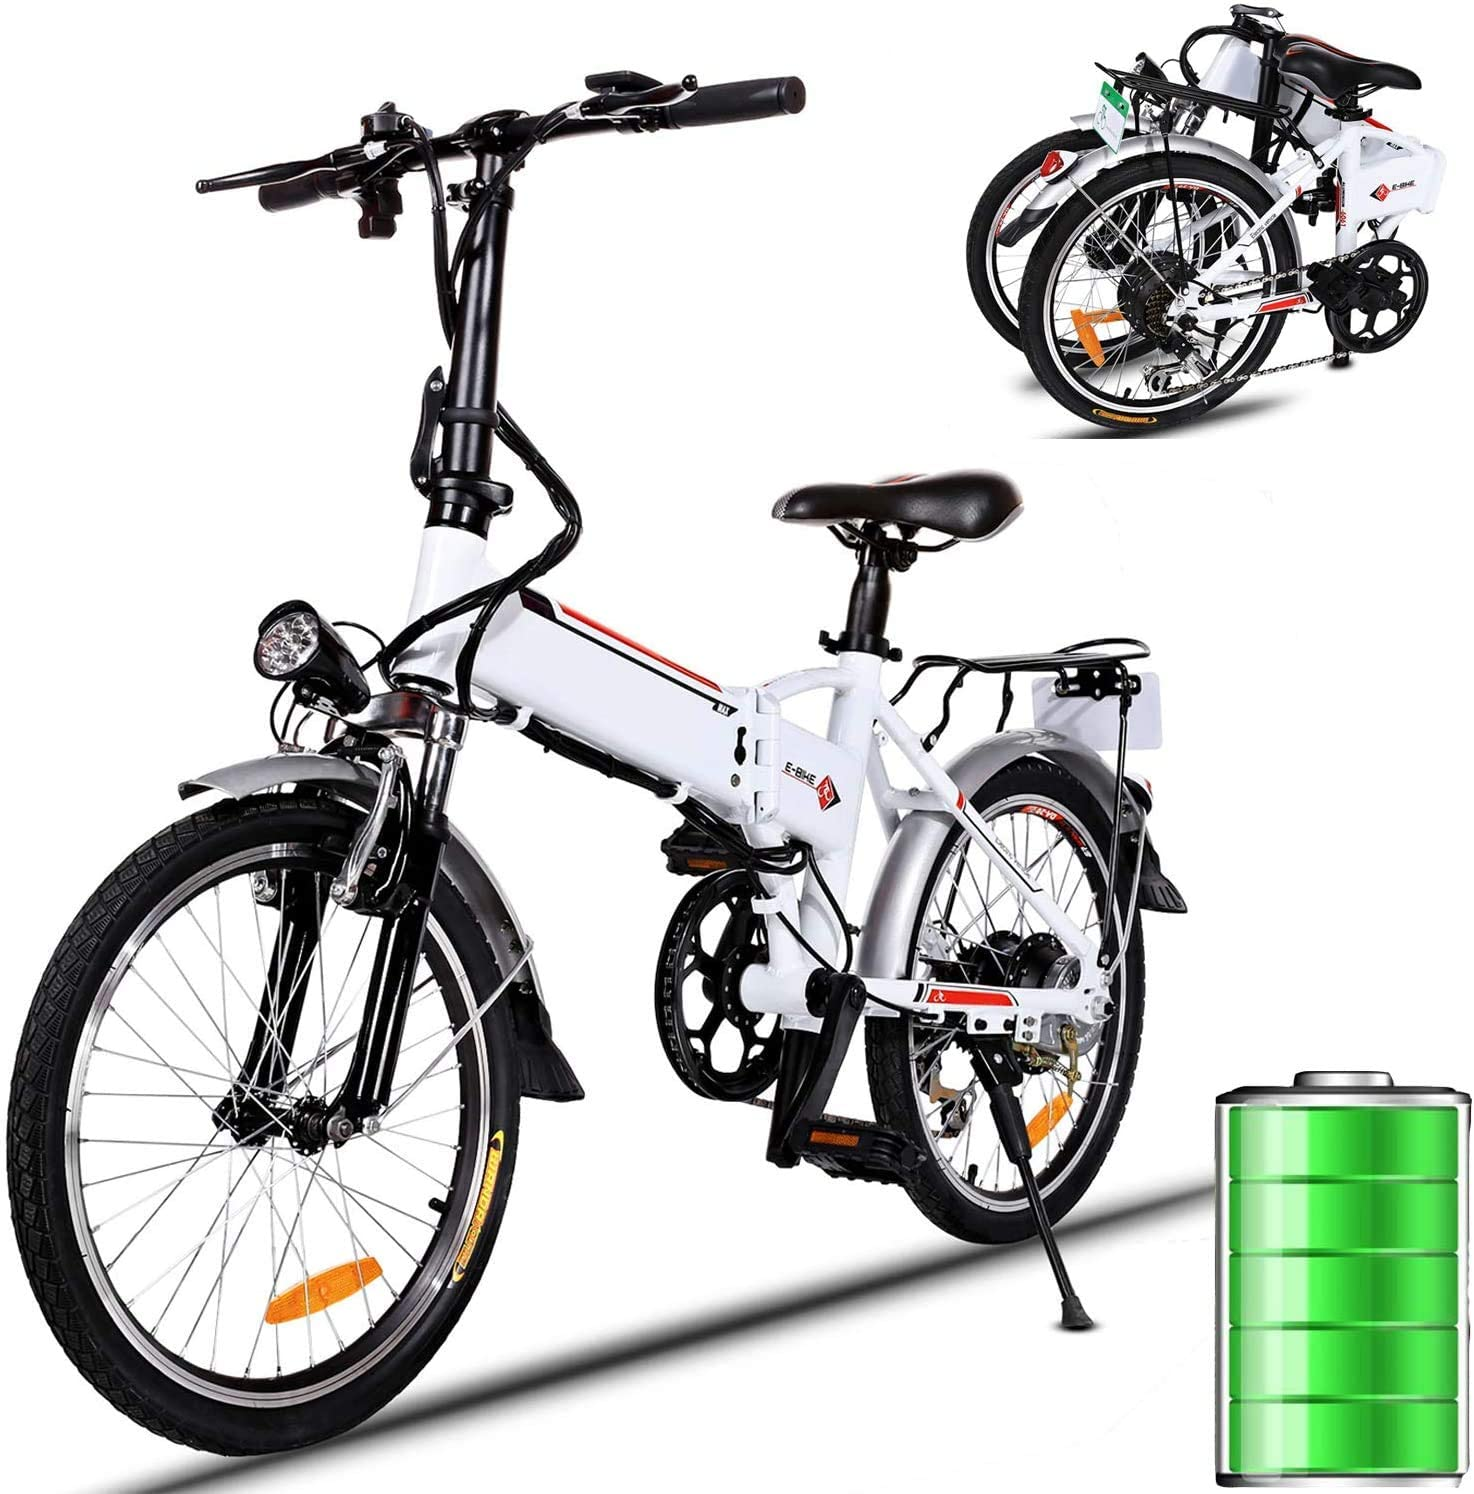 Amazon: Folding Electric Bike 250W City Commuter Ebike with 7 Speed Gear, Just $629.99 (Reg $1,259.99) after code!